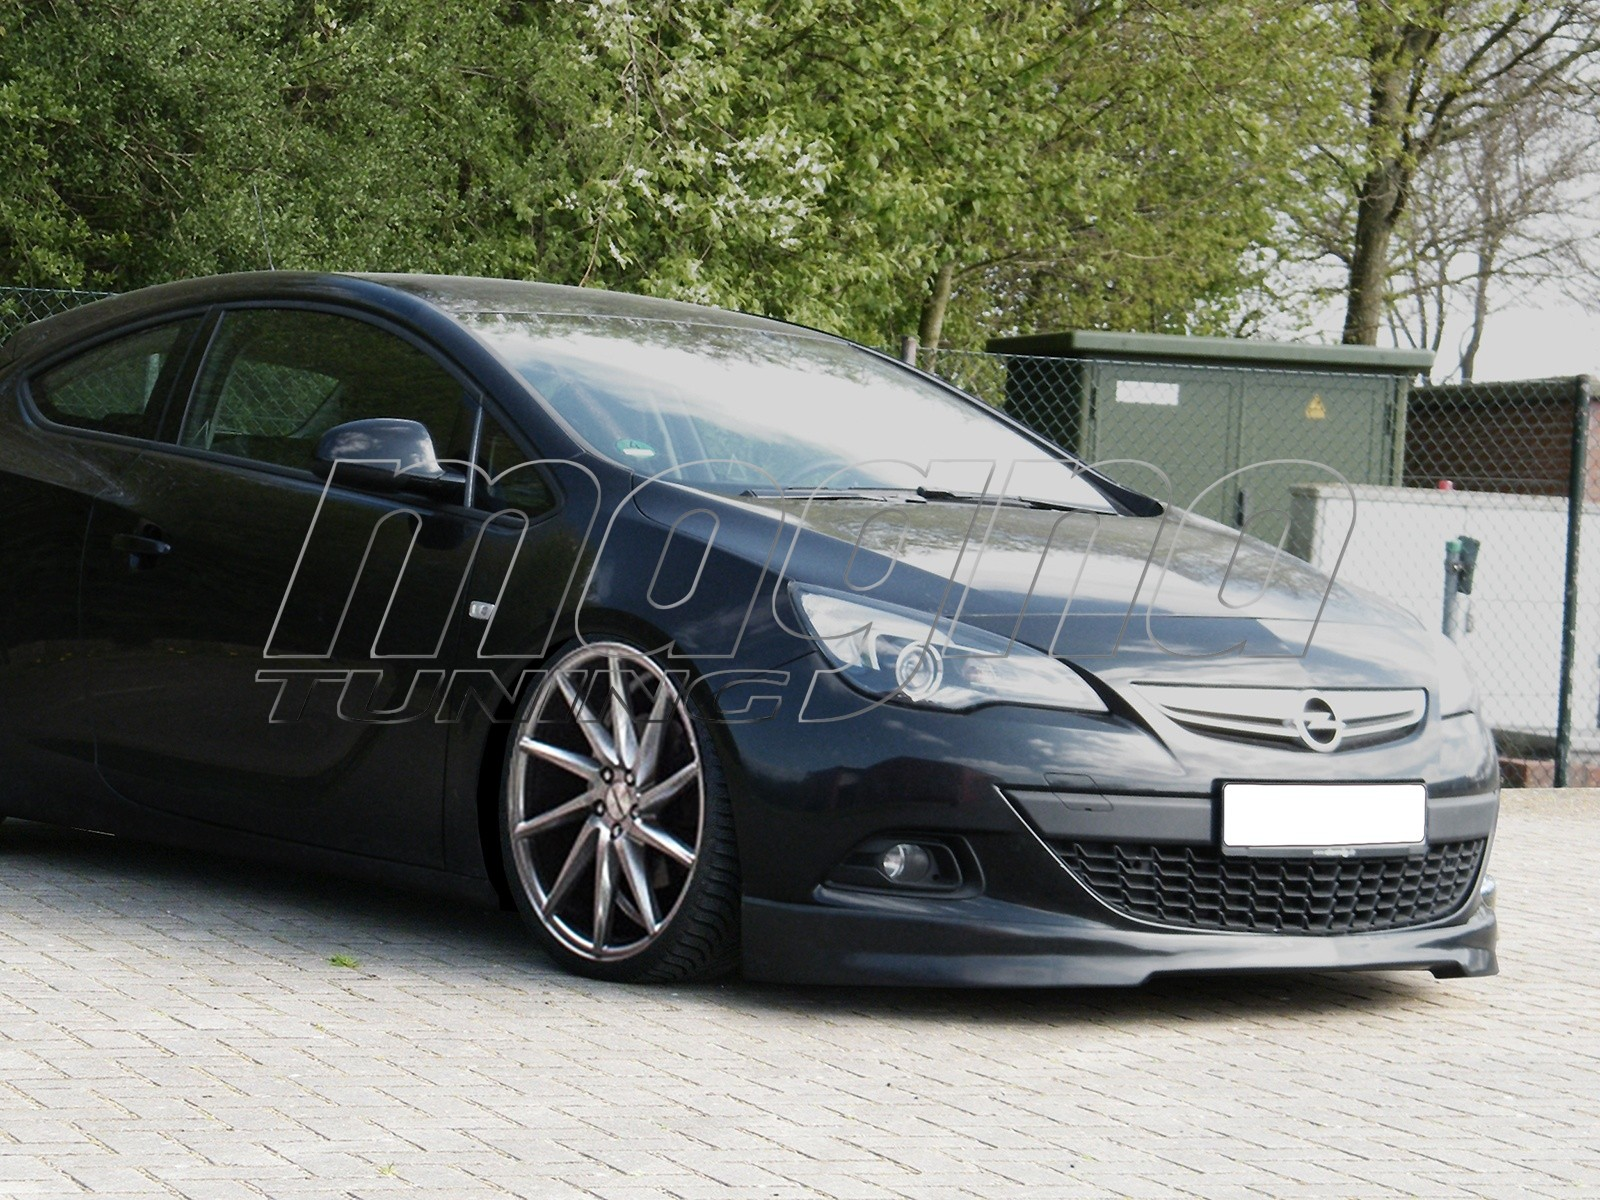 Opel Astra J GTC Intenso Elso Lokharito Toldat